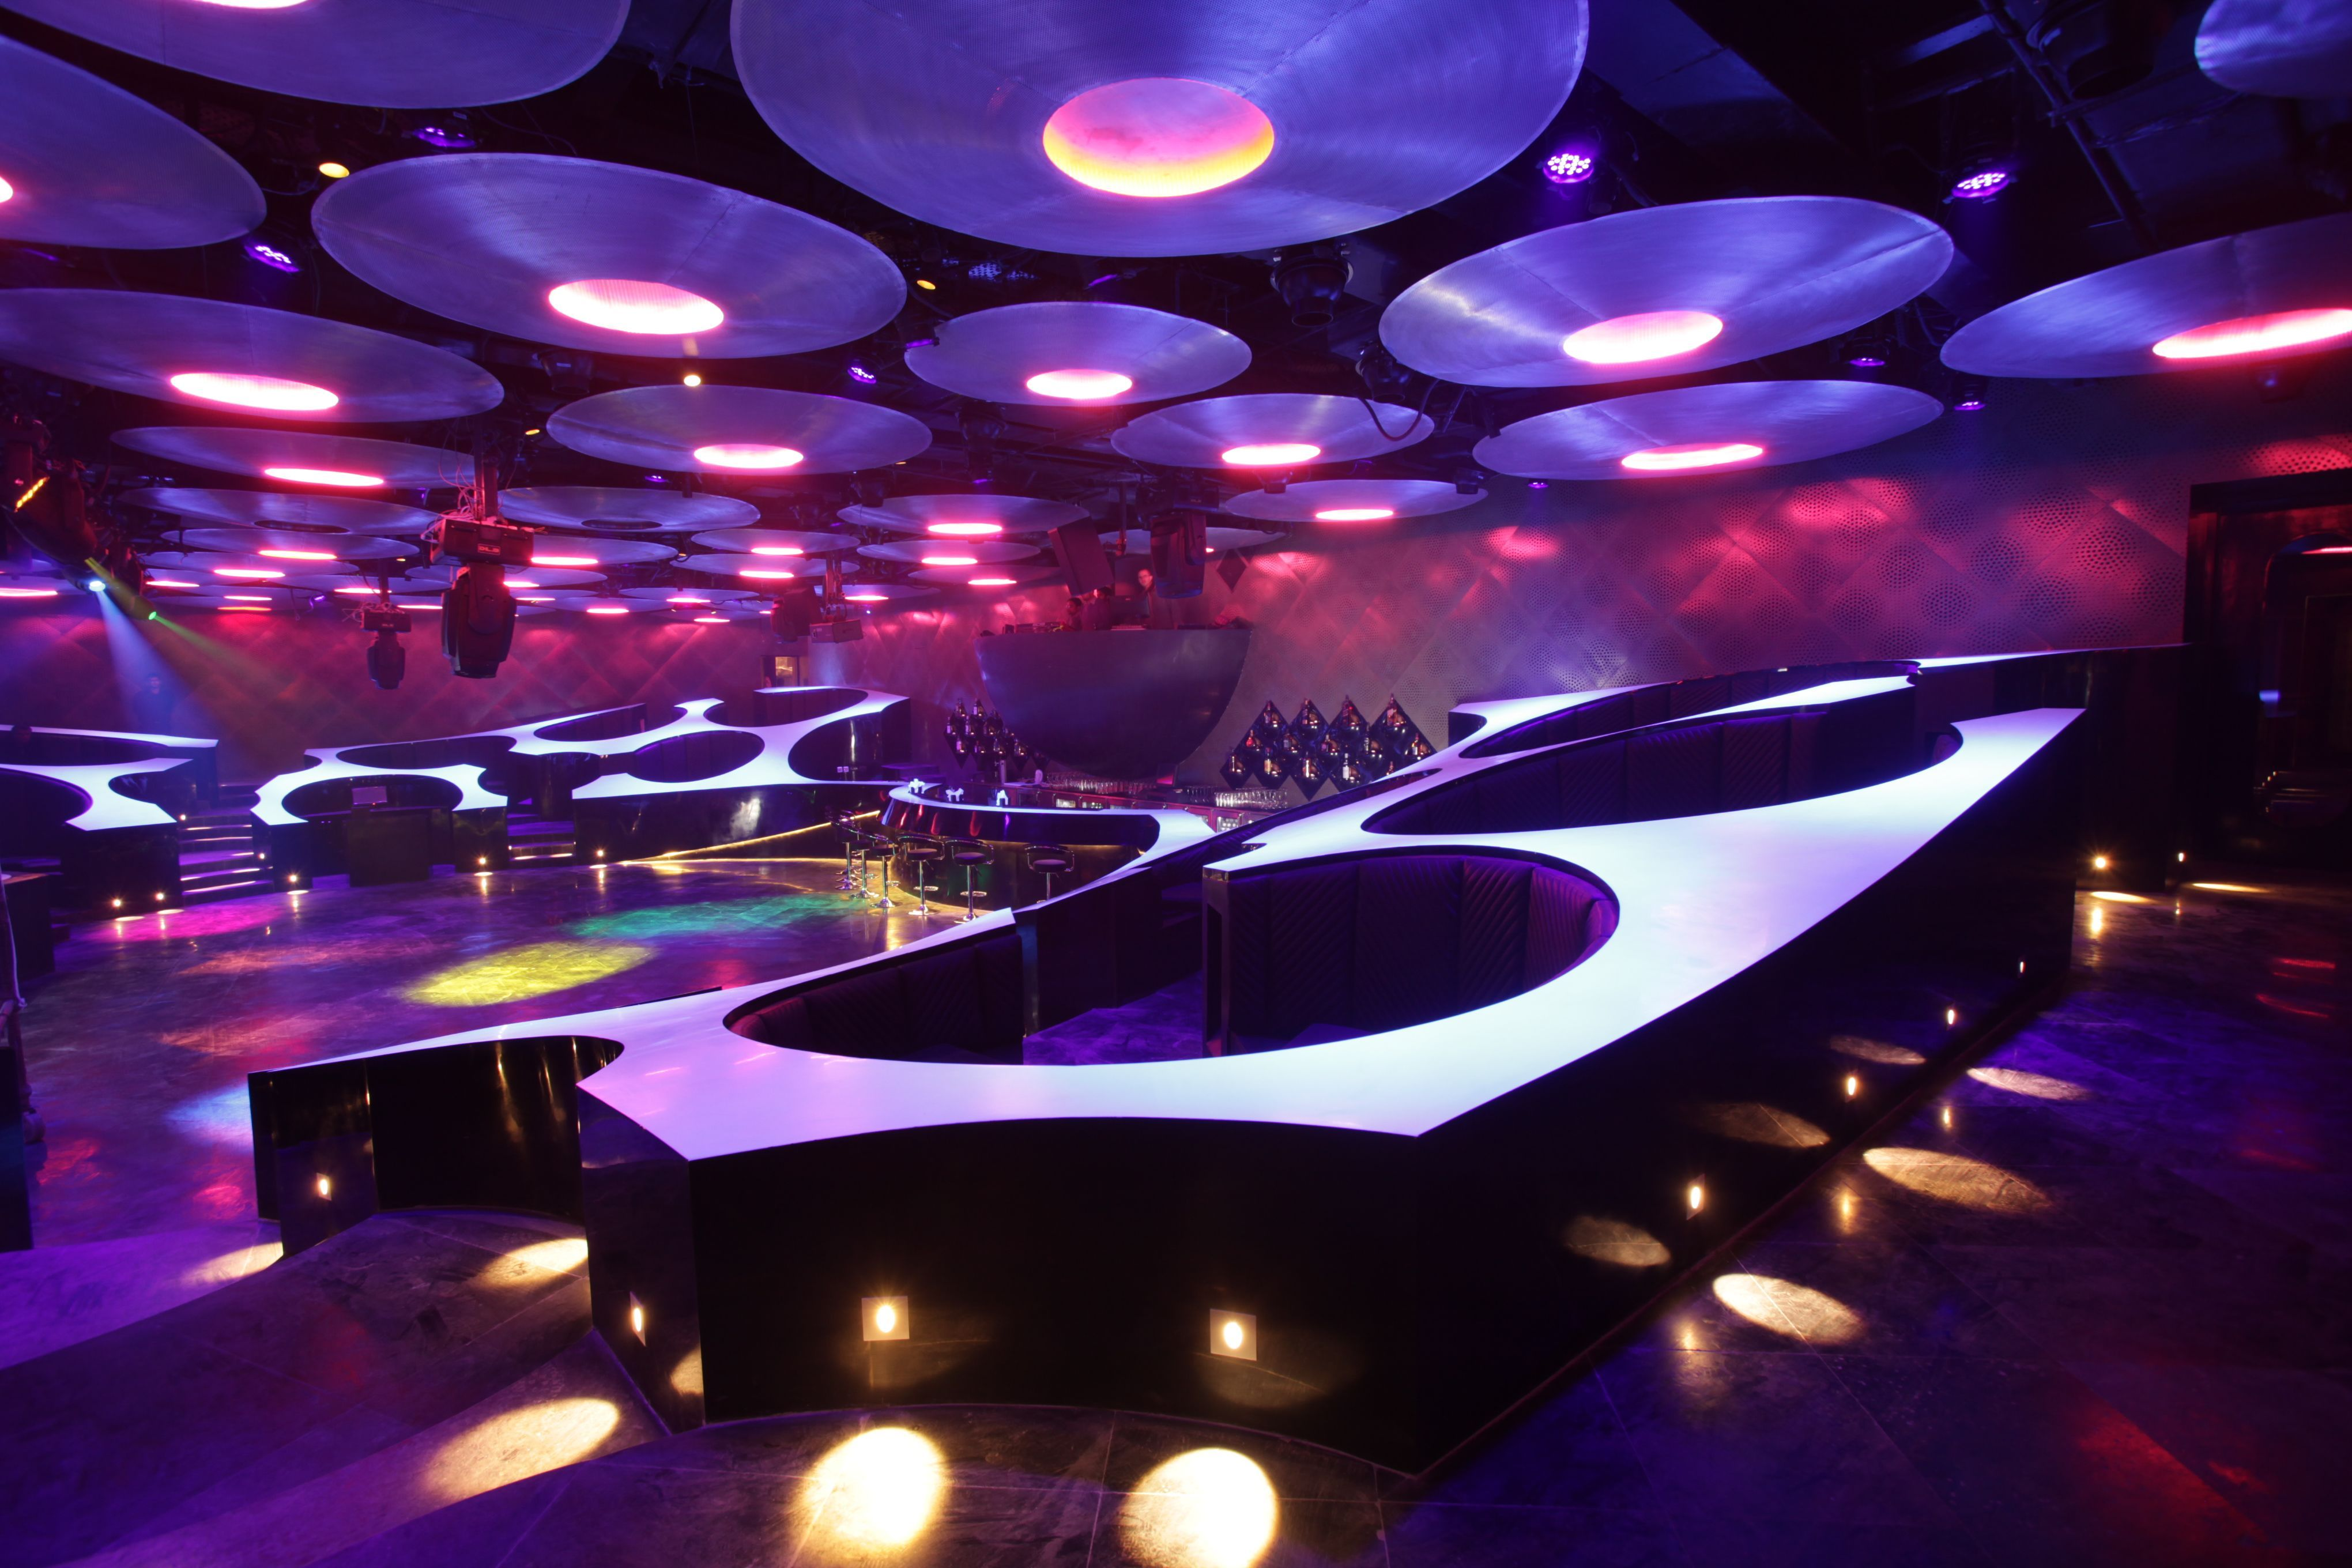 Blue Frog Club In Mumbai, India Really Cool Looking Curvy